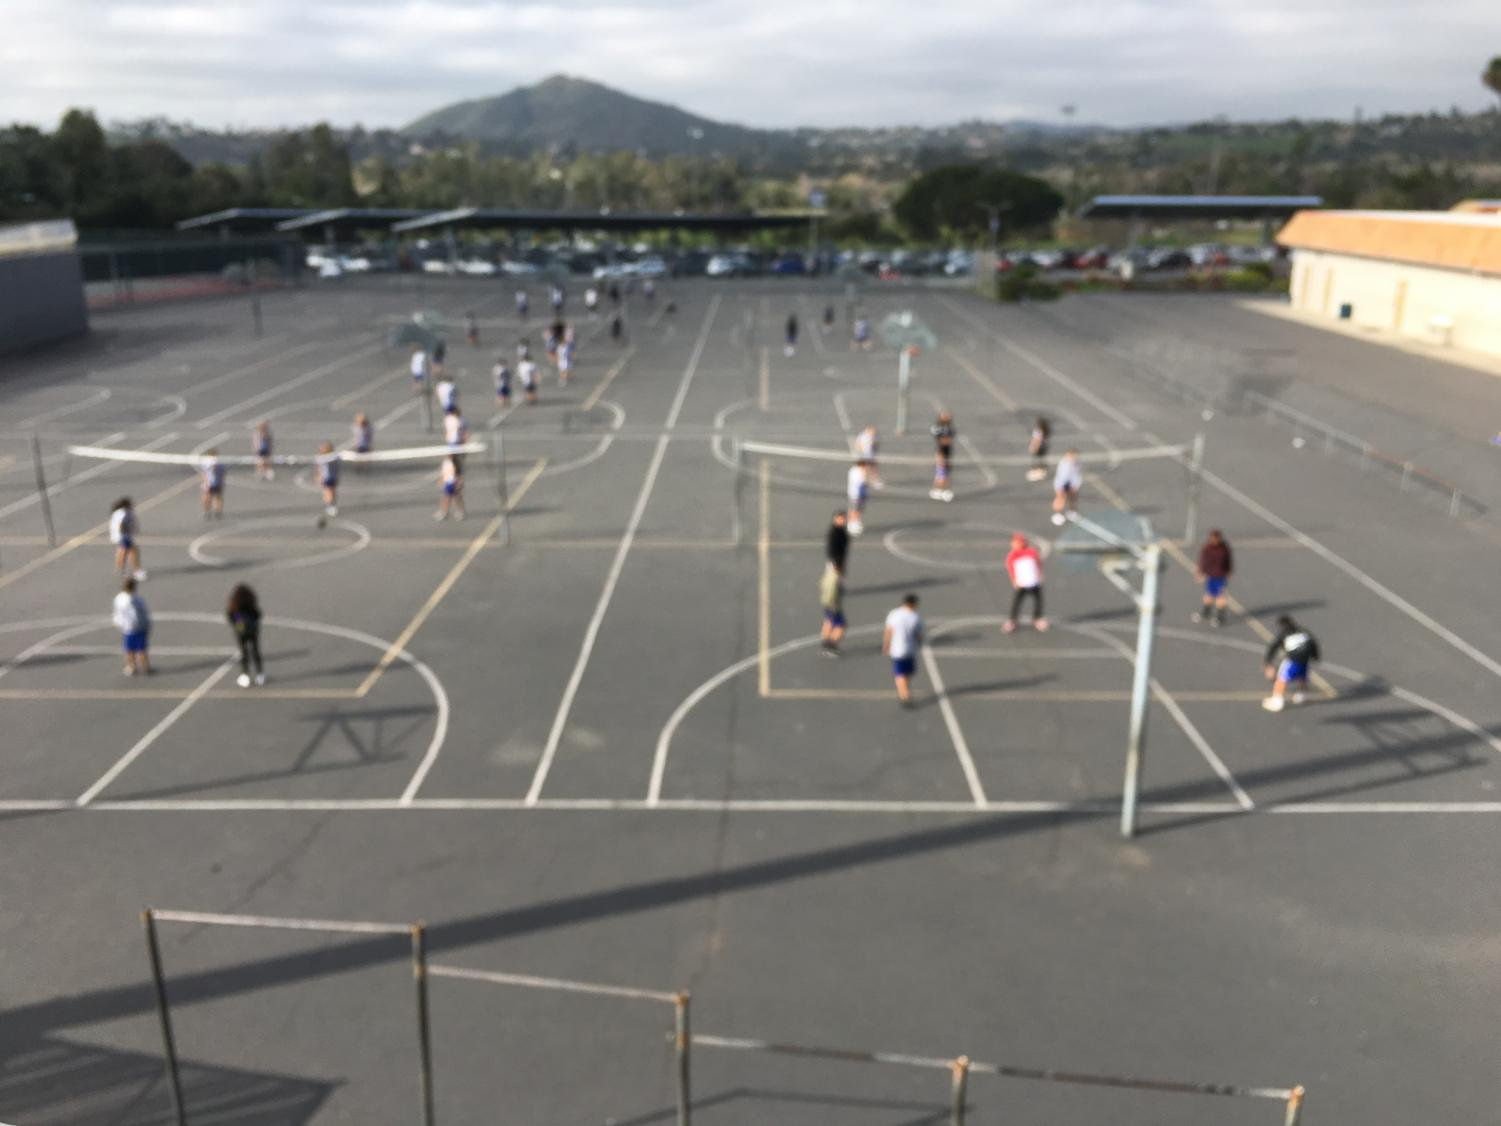 Students at San Pasqual preparing for the fitness test that takes place in the following few months.   photo credits- Elizabeth Haros